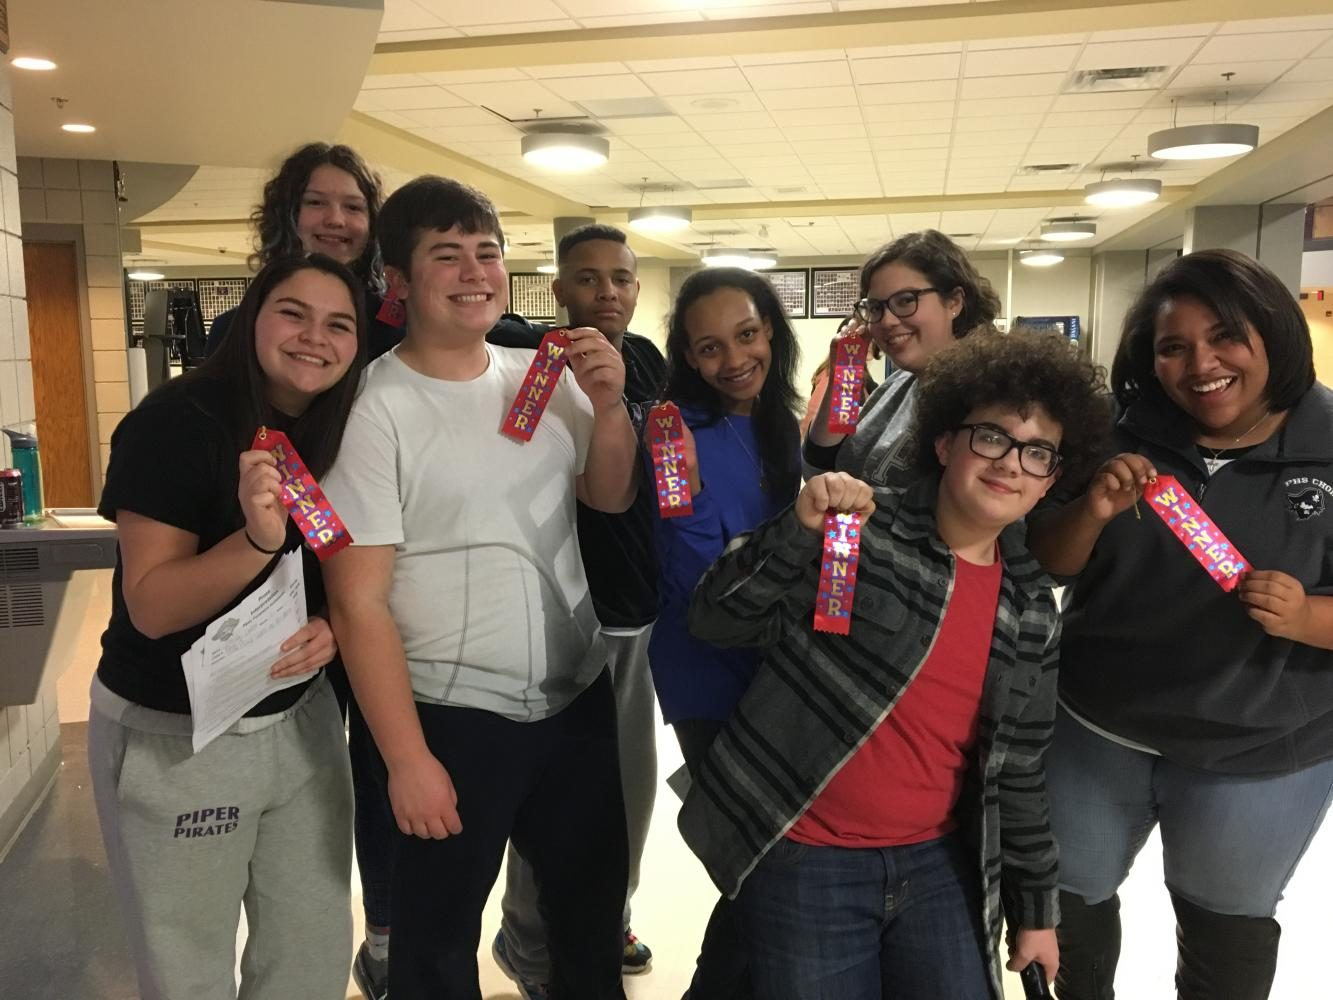 The+forensics+lock-in+Jan.+20+included+a+mock+tournament.+These+novices+took+first+in+their+individual+events.+From+left%3A+Olivia+Ortiz%2C+Martha+Wolf%2C+Drew+Novak%2C+Kaulon+Eason%2C+Eden+Barnes%2C+Emma+Bertrand%2C+Trent+Smith%2C+and+Alena+Riley.